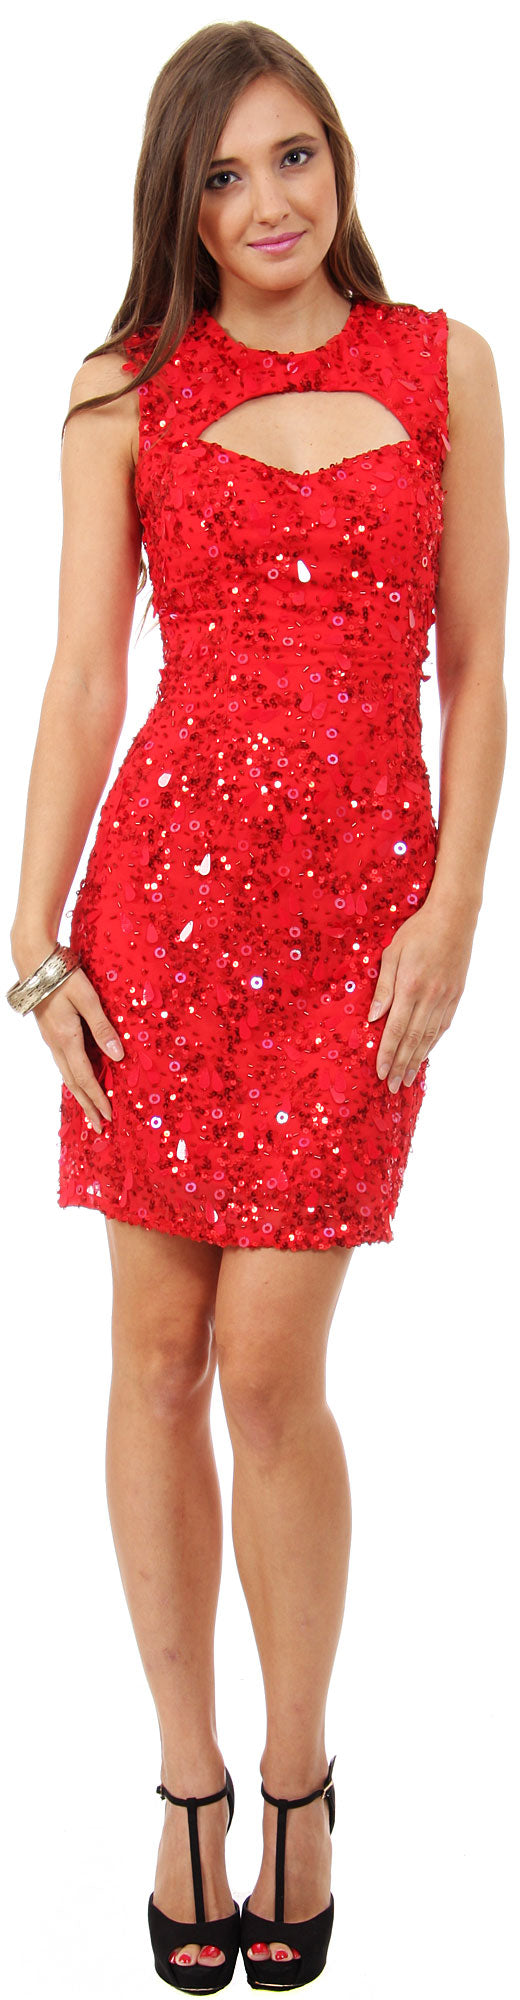 Main image of Keyhole Neck & Back Short Sequined Party Prom Dress